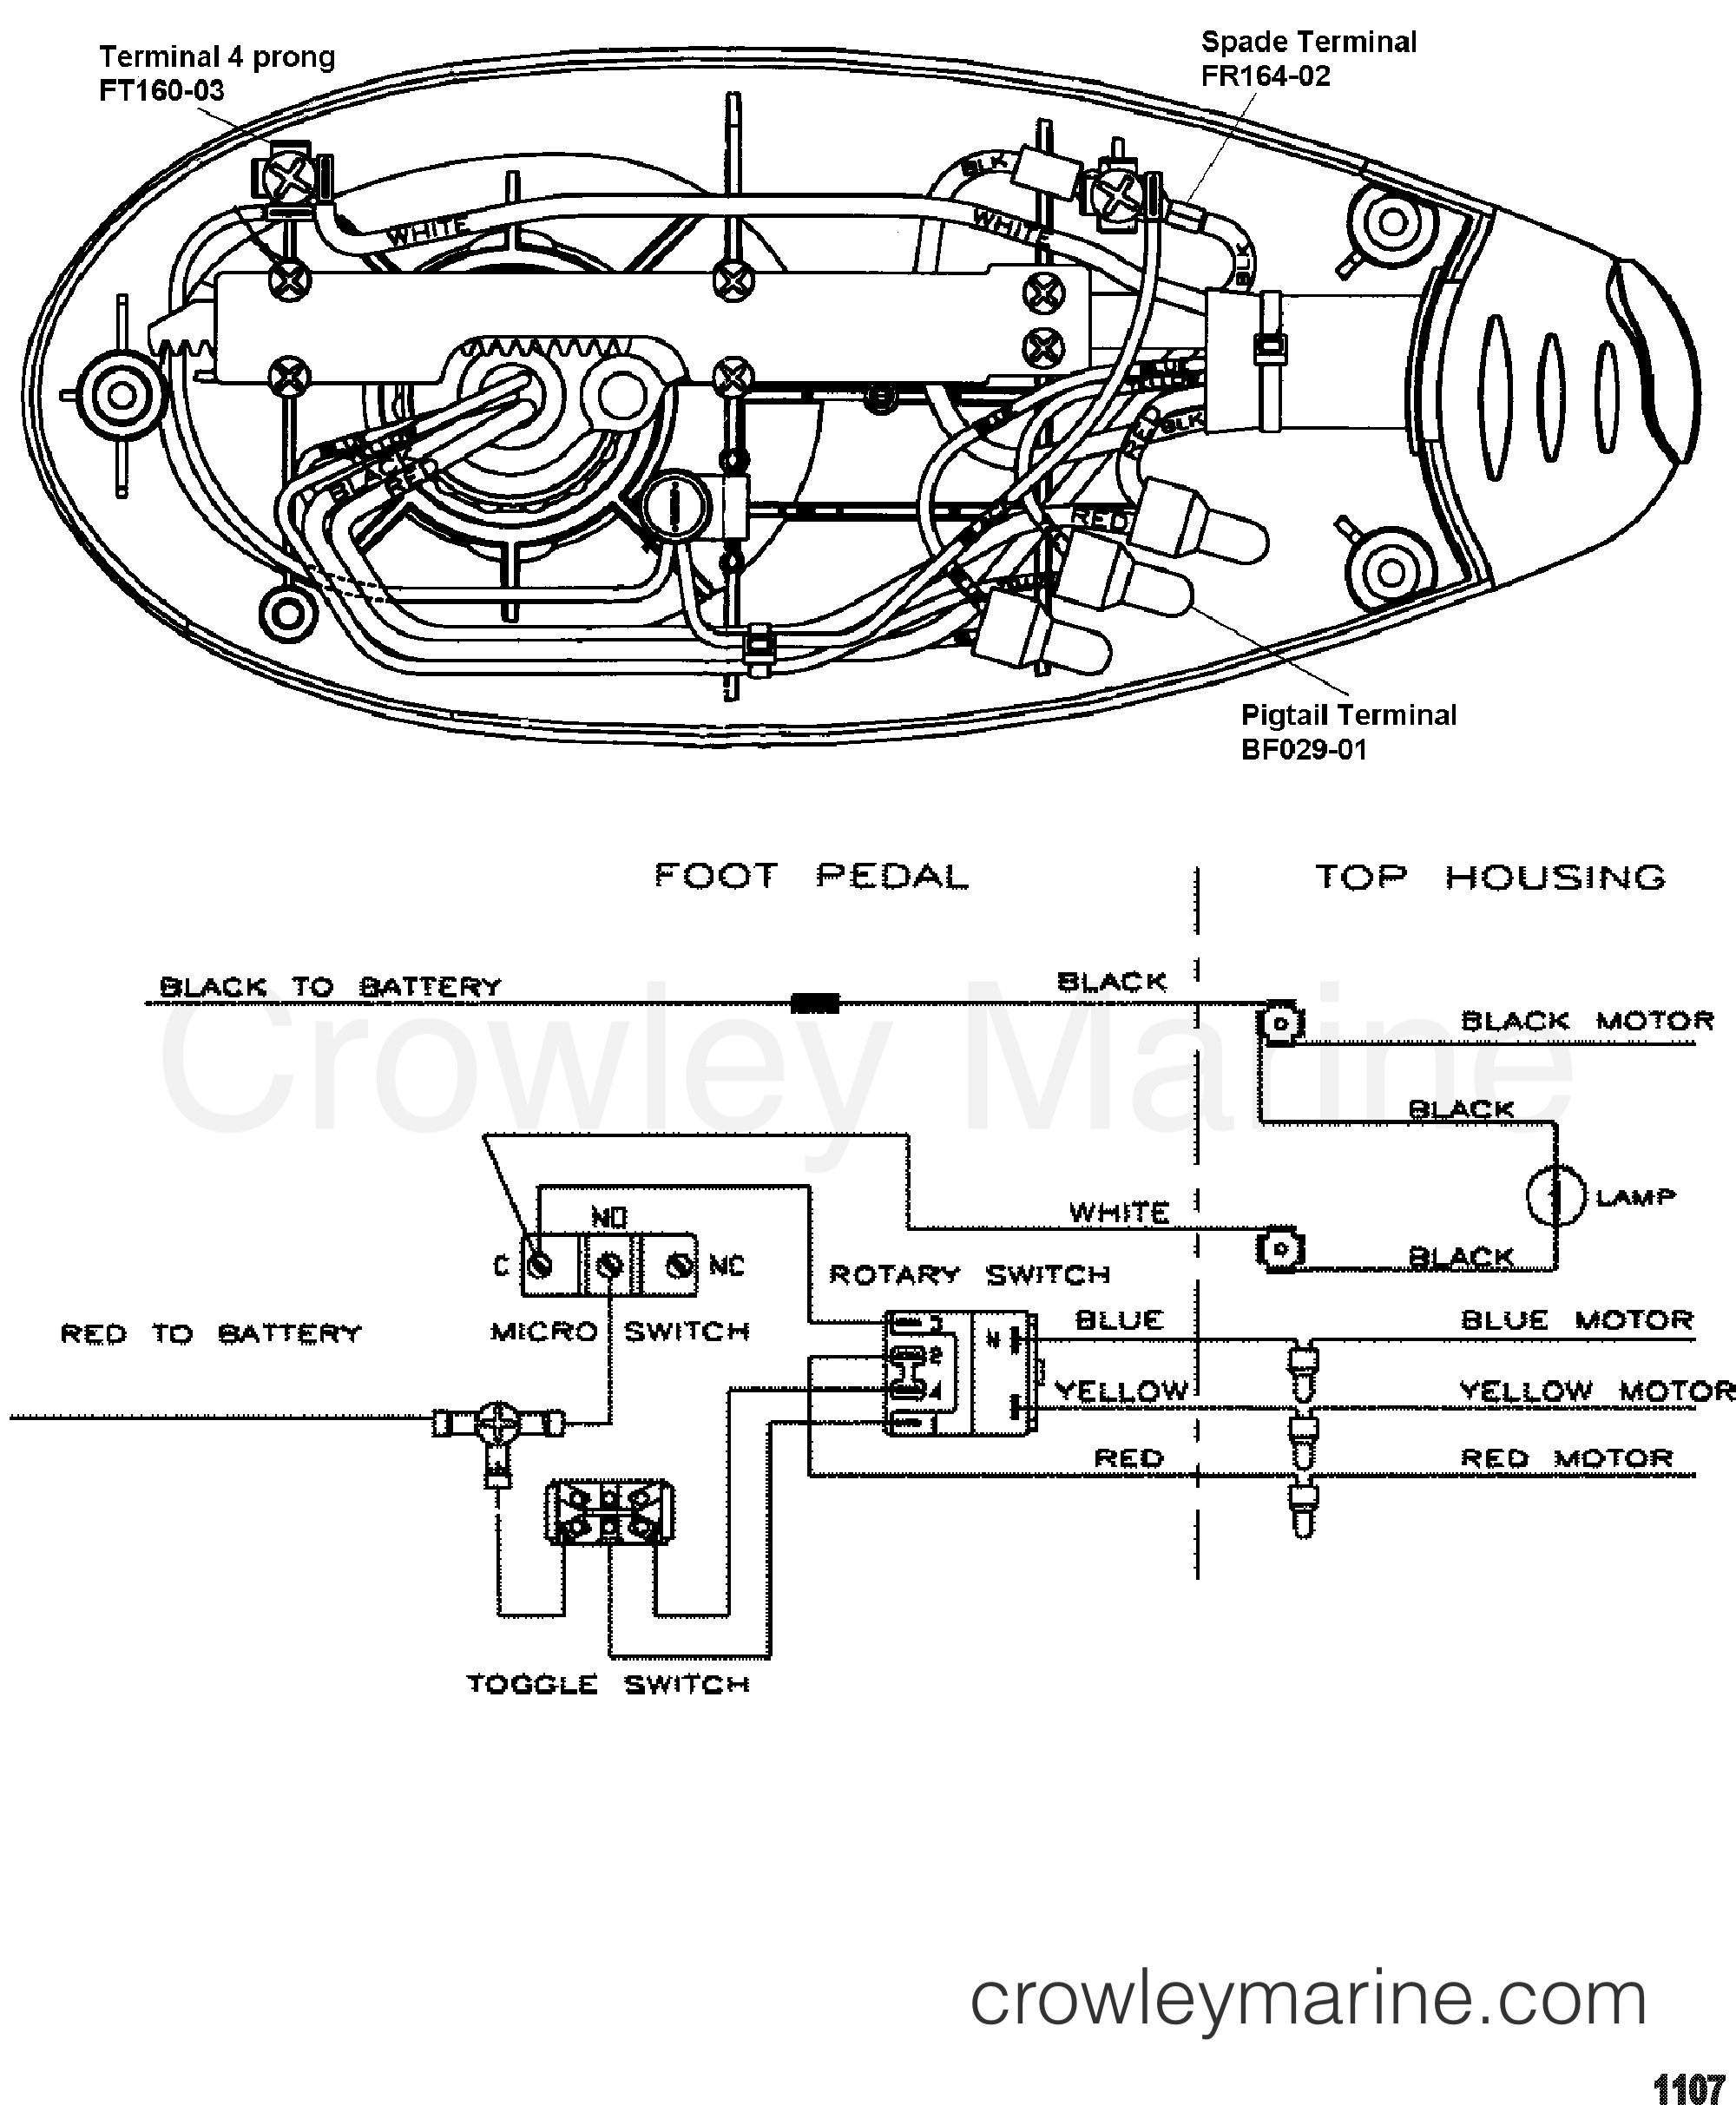 2000 MotorGuide 36V [MOTORGUIDE] - 9EF107KWU WIRE DIAGRAM(MODEL EF54P) (12 VOLT) section